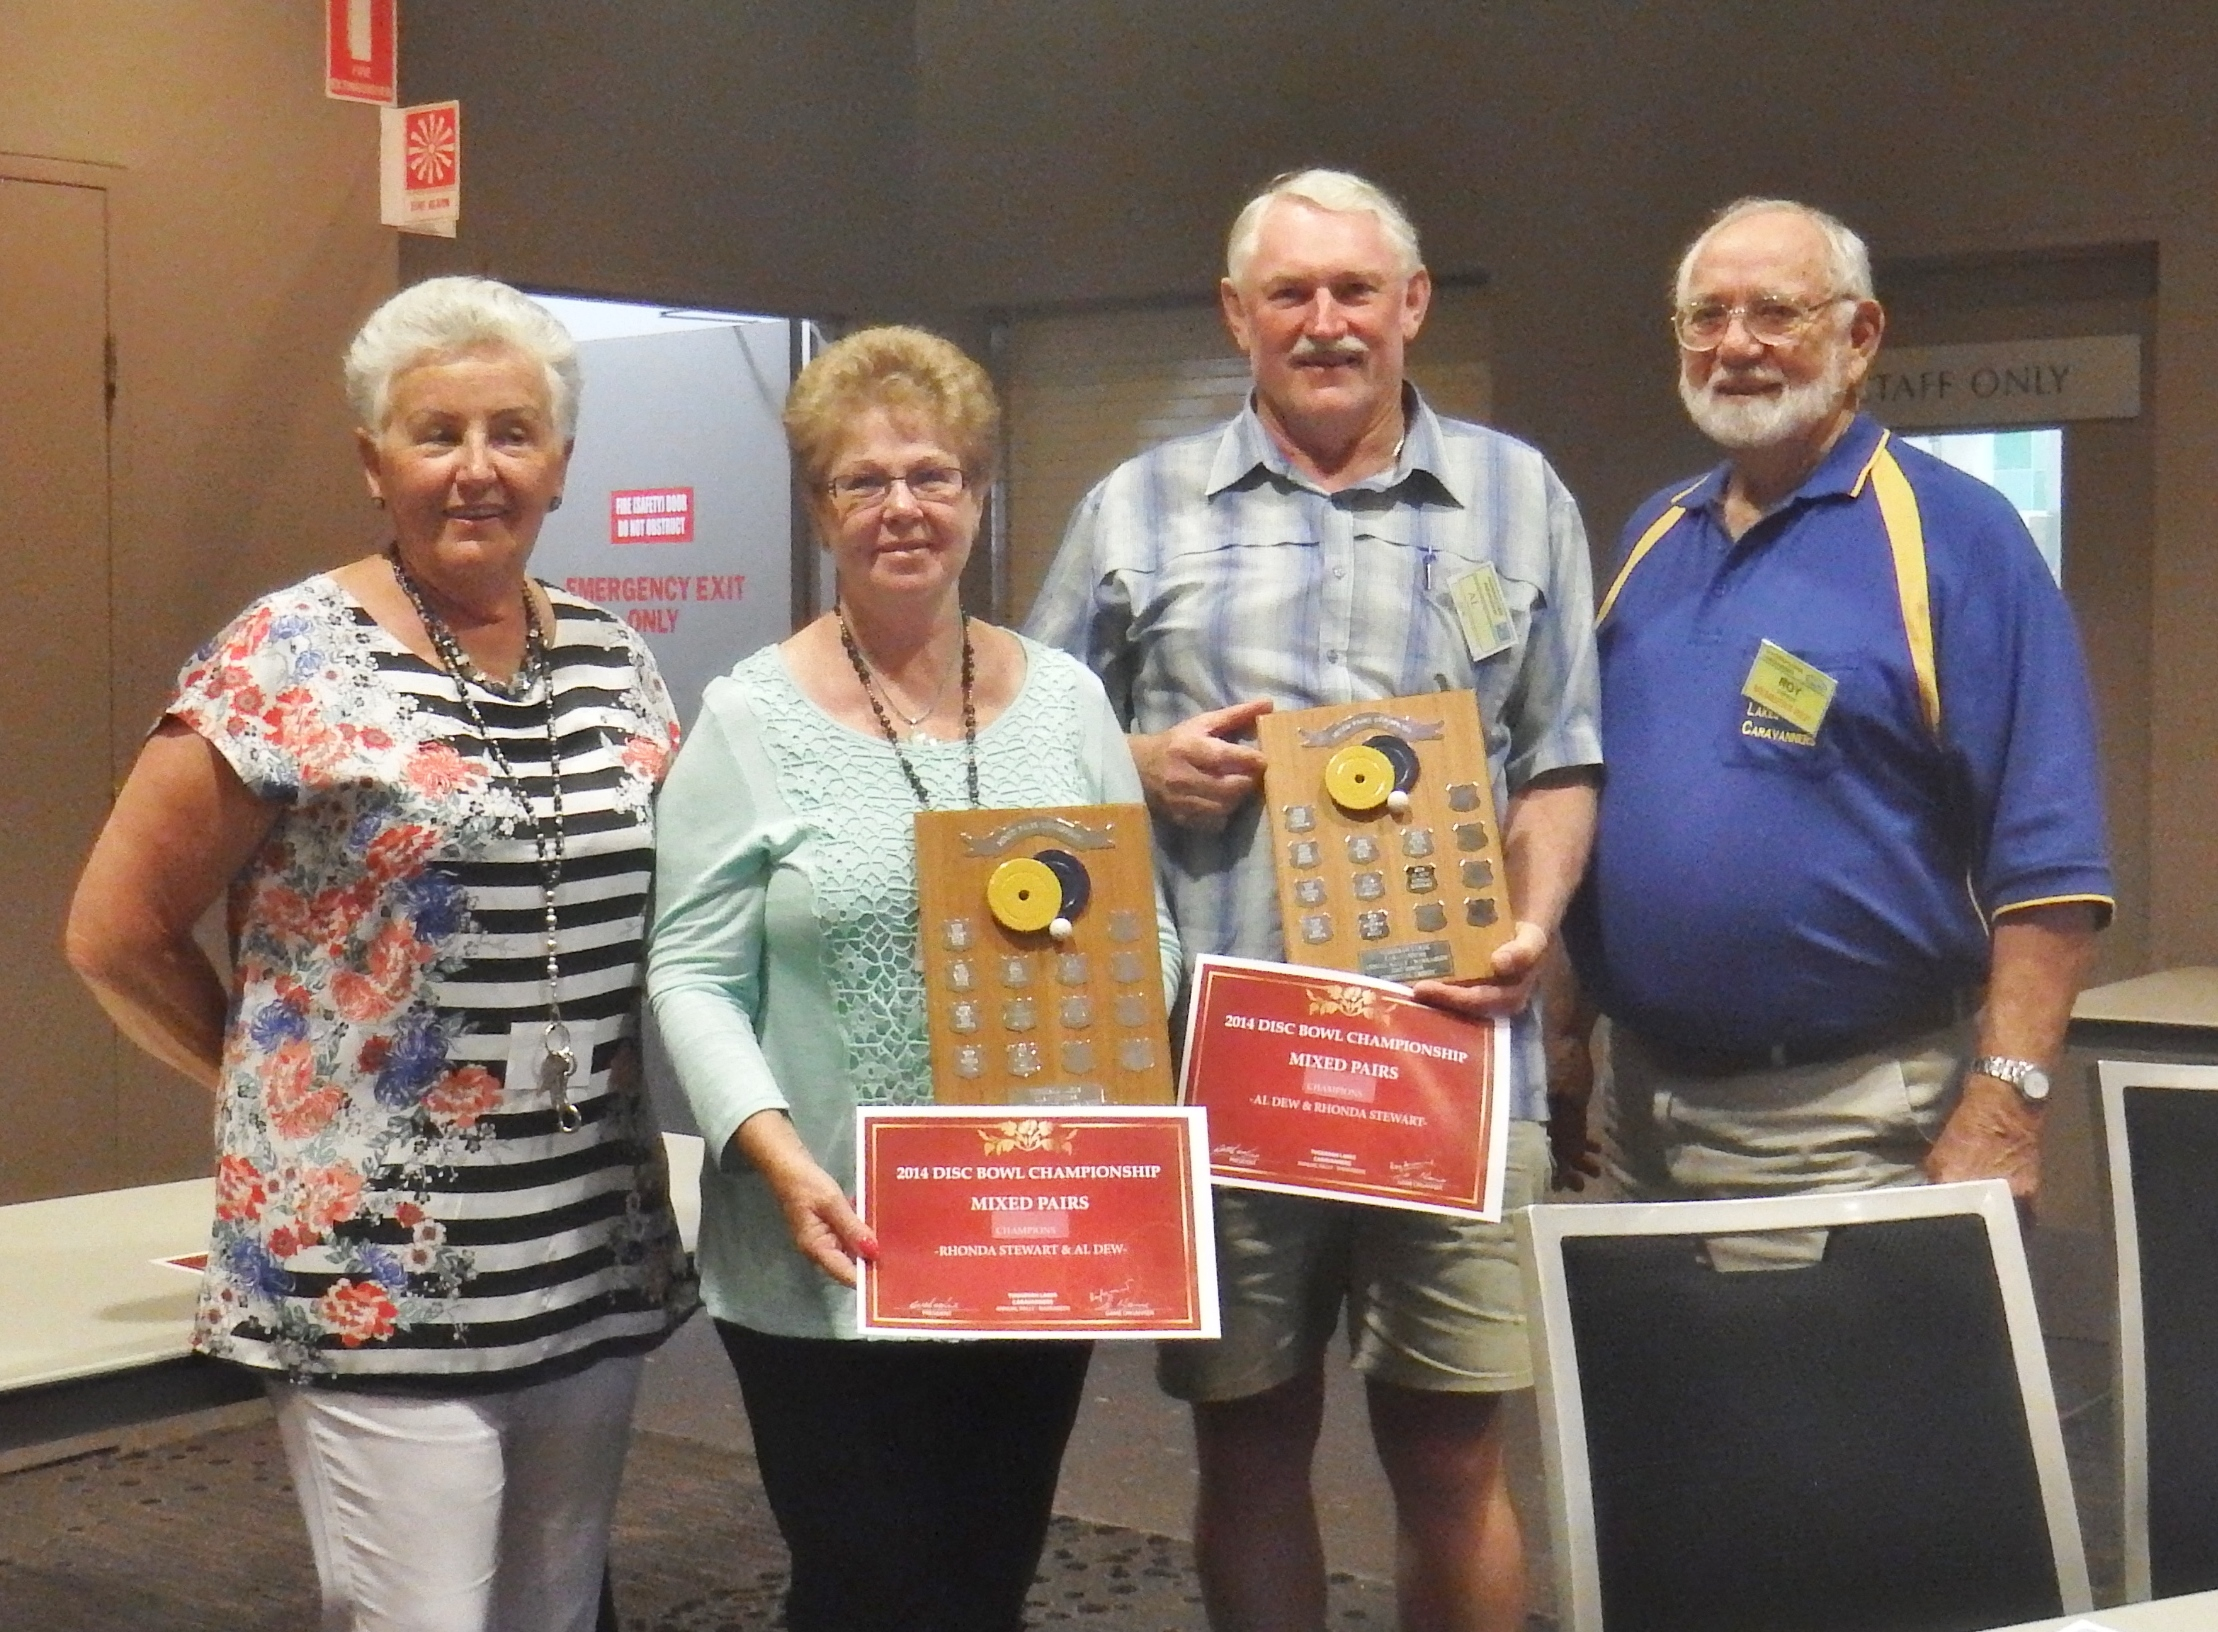 AGM 2014 - Disc Bowls Mixed Pairs Winners -RHONDA & AL - with Coral and Roy.JPG